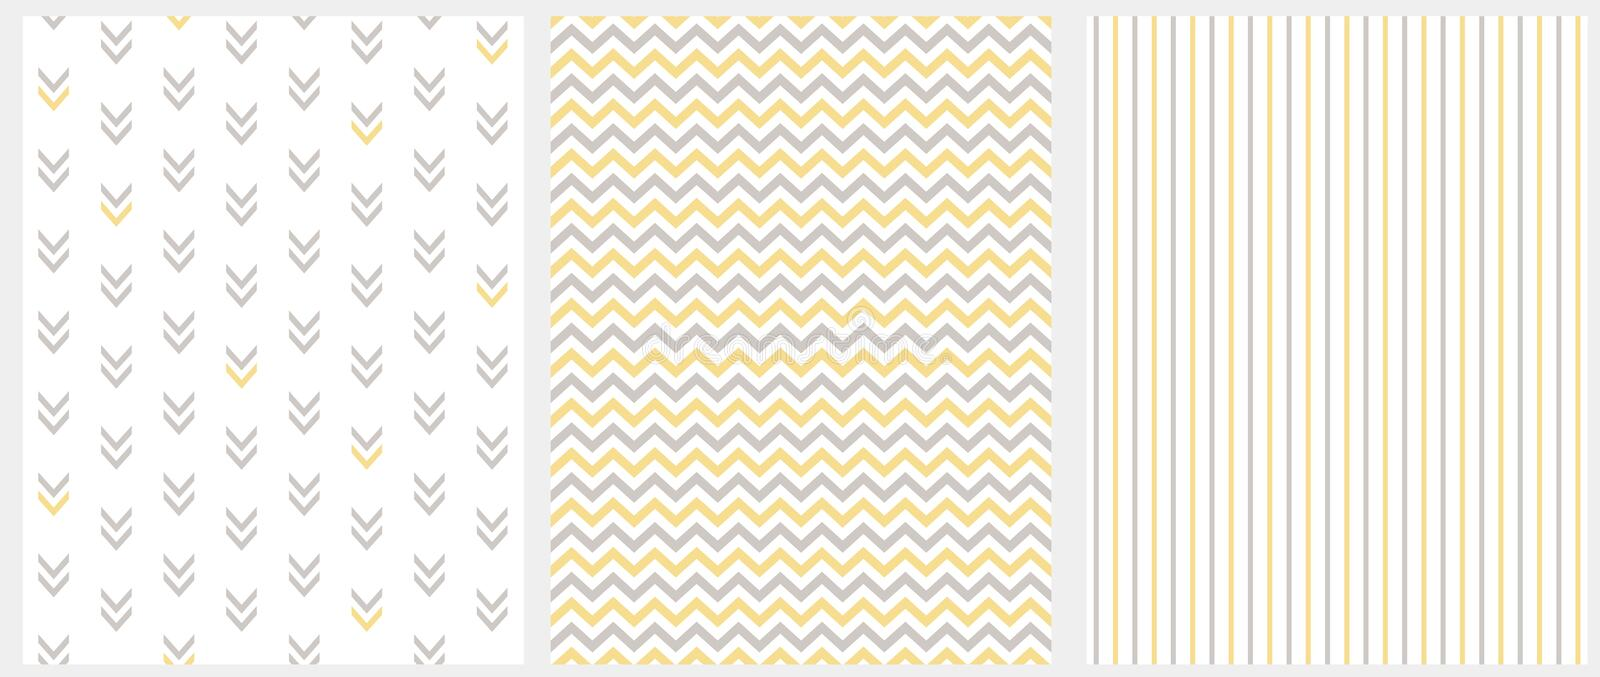 Set of 3 Geometric Seamless Vector Patterns. Gray and Yellow Chevron, Stripes and Abstract Arrows Isolated on a White. stock illustration